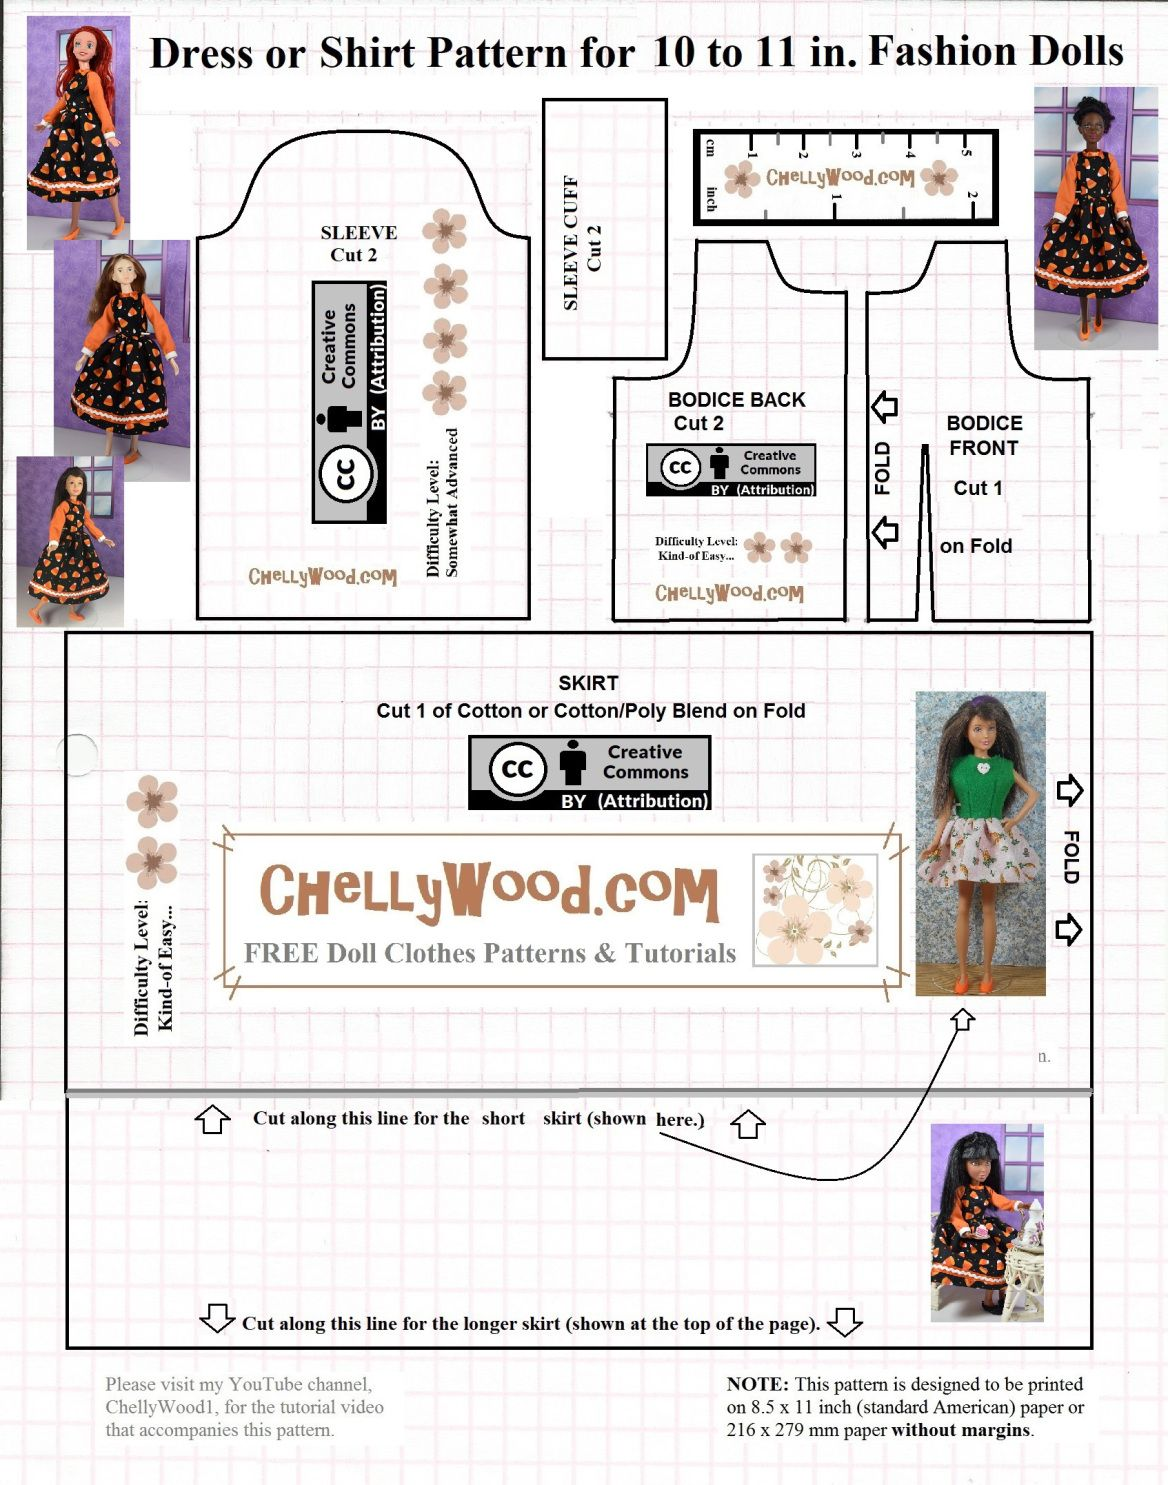 Please visit chellywood for free printable sewing patterns please visit chellywood for free printable sewing patterns for dolls of many shapes jeuxipadfo Gallery